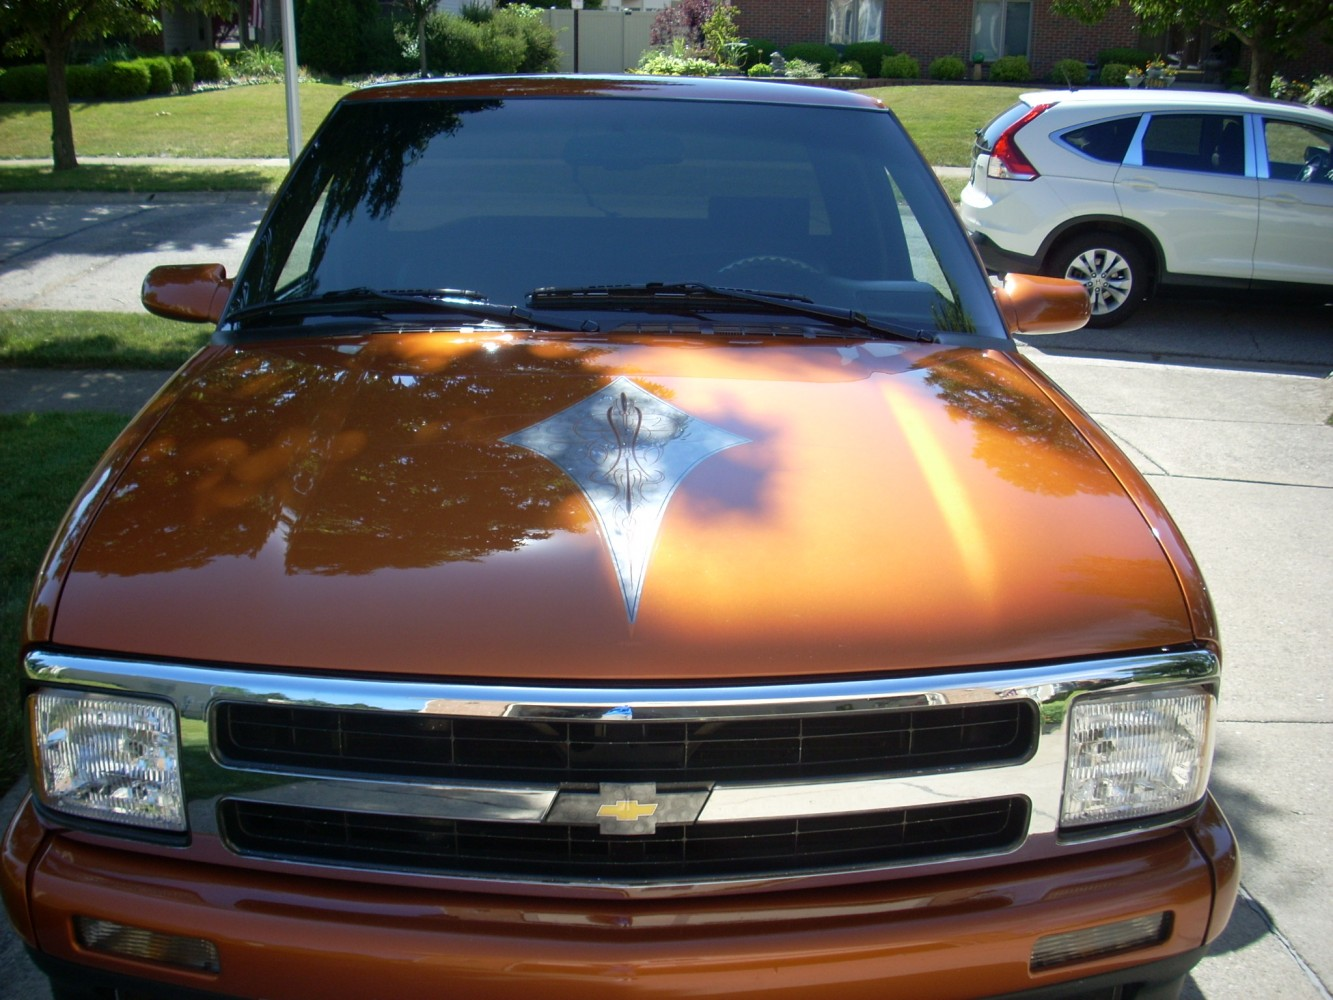 Hot Rod for Sale - 1997 Chevrolet CHEVY TRUCK S10, Restro Mod